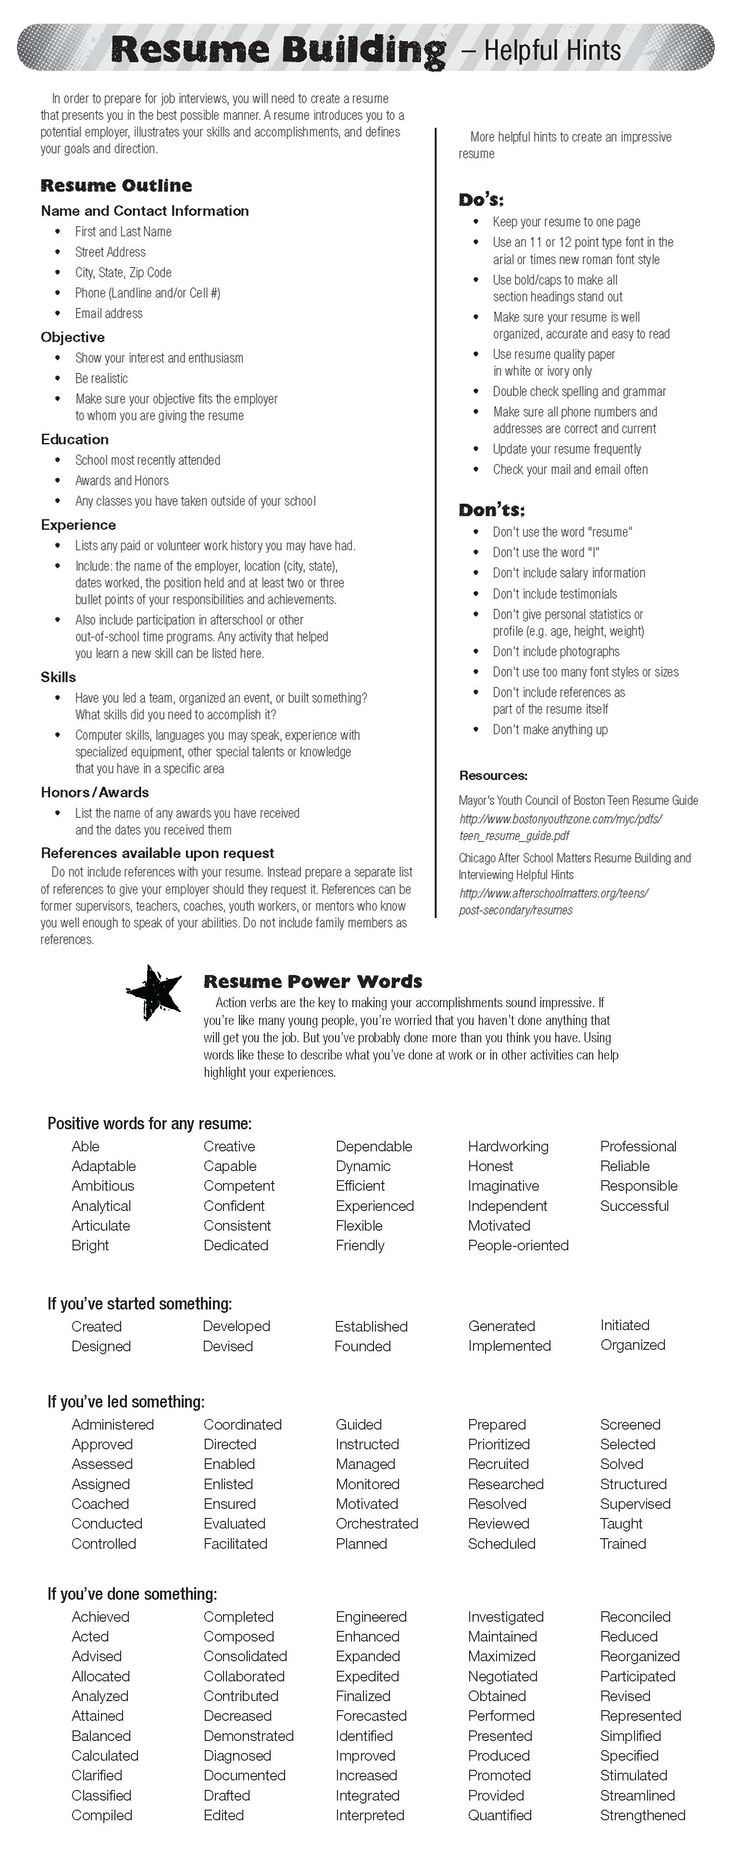 Opposenewapstandardsus  Winning  Ideas About Resume On Pinterest  Cv Format Resume Cv And  With Interesting  Ideas About Resume On Pinterest  Cv Format Resume Cv And Resume Templates With Appealing Resume Writing Books Also Food Resume In Addition Resume Writing For Dummies And How To Resume Cover Letter As Well As Job Summary For Resume Additionally Culinary Resume Examples From Pinterestcom With Opposenewapstandardsus  Interesting  Ideas About Resume On Pinterest  Cv Format Resume Cv And  With Appealing  Ideas About Resume On Pinterest  Cv Format Resume Cv And Resume Templates And Winning Resume Writing Books Also Food Resume In Addition Resume Writing For Dummies From Pinterestcom